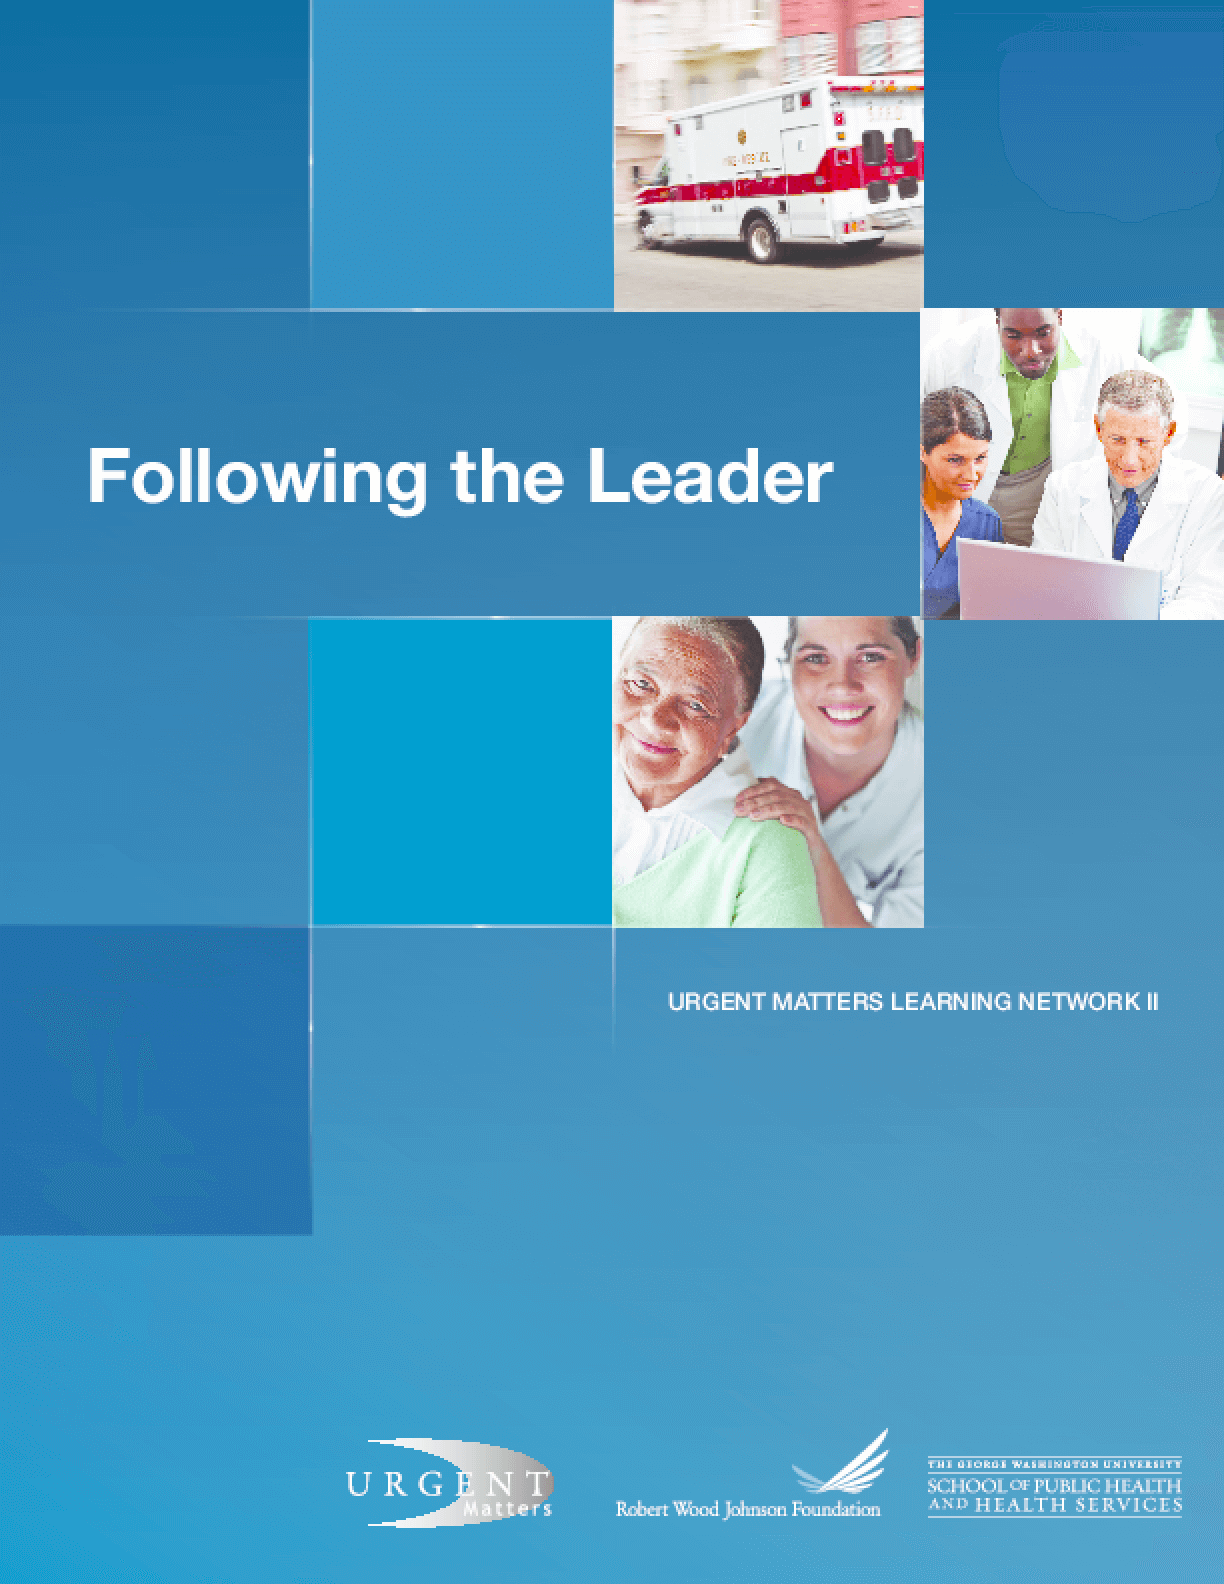 Following the Leader: Urgent Matters Learning Network II